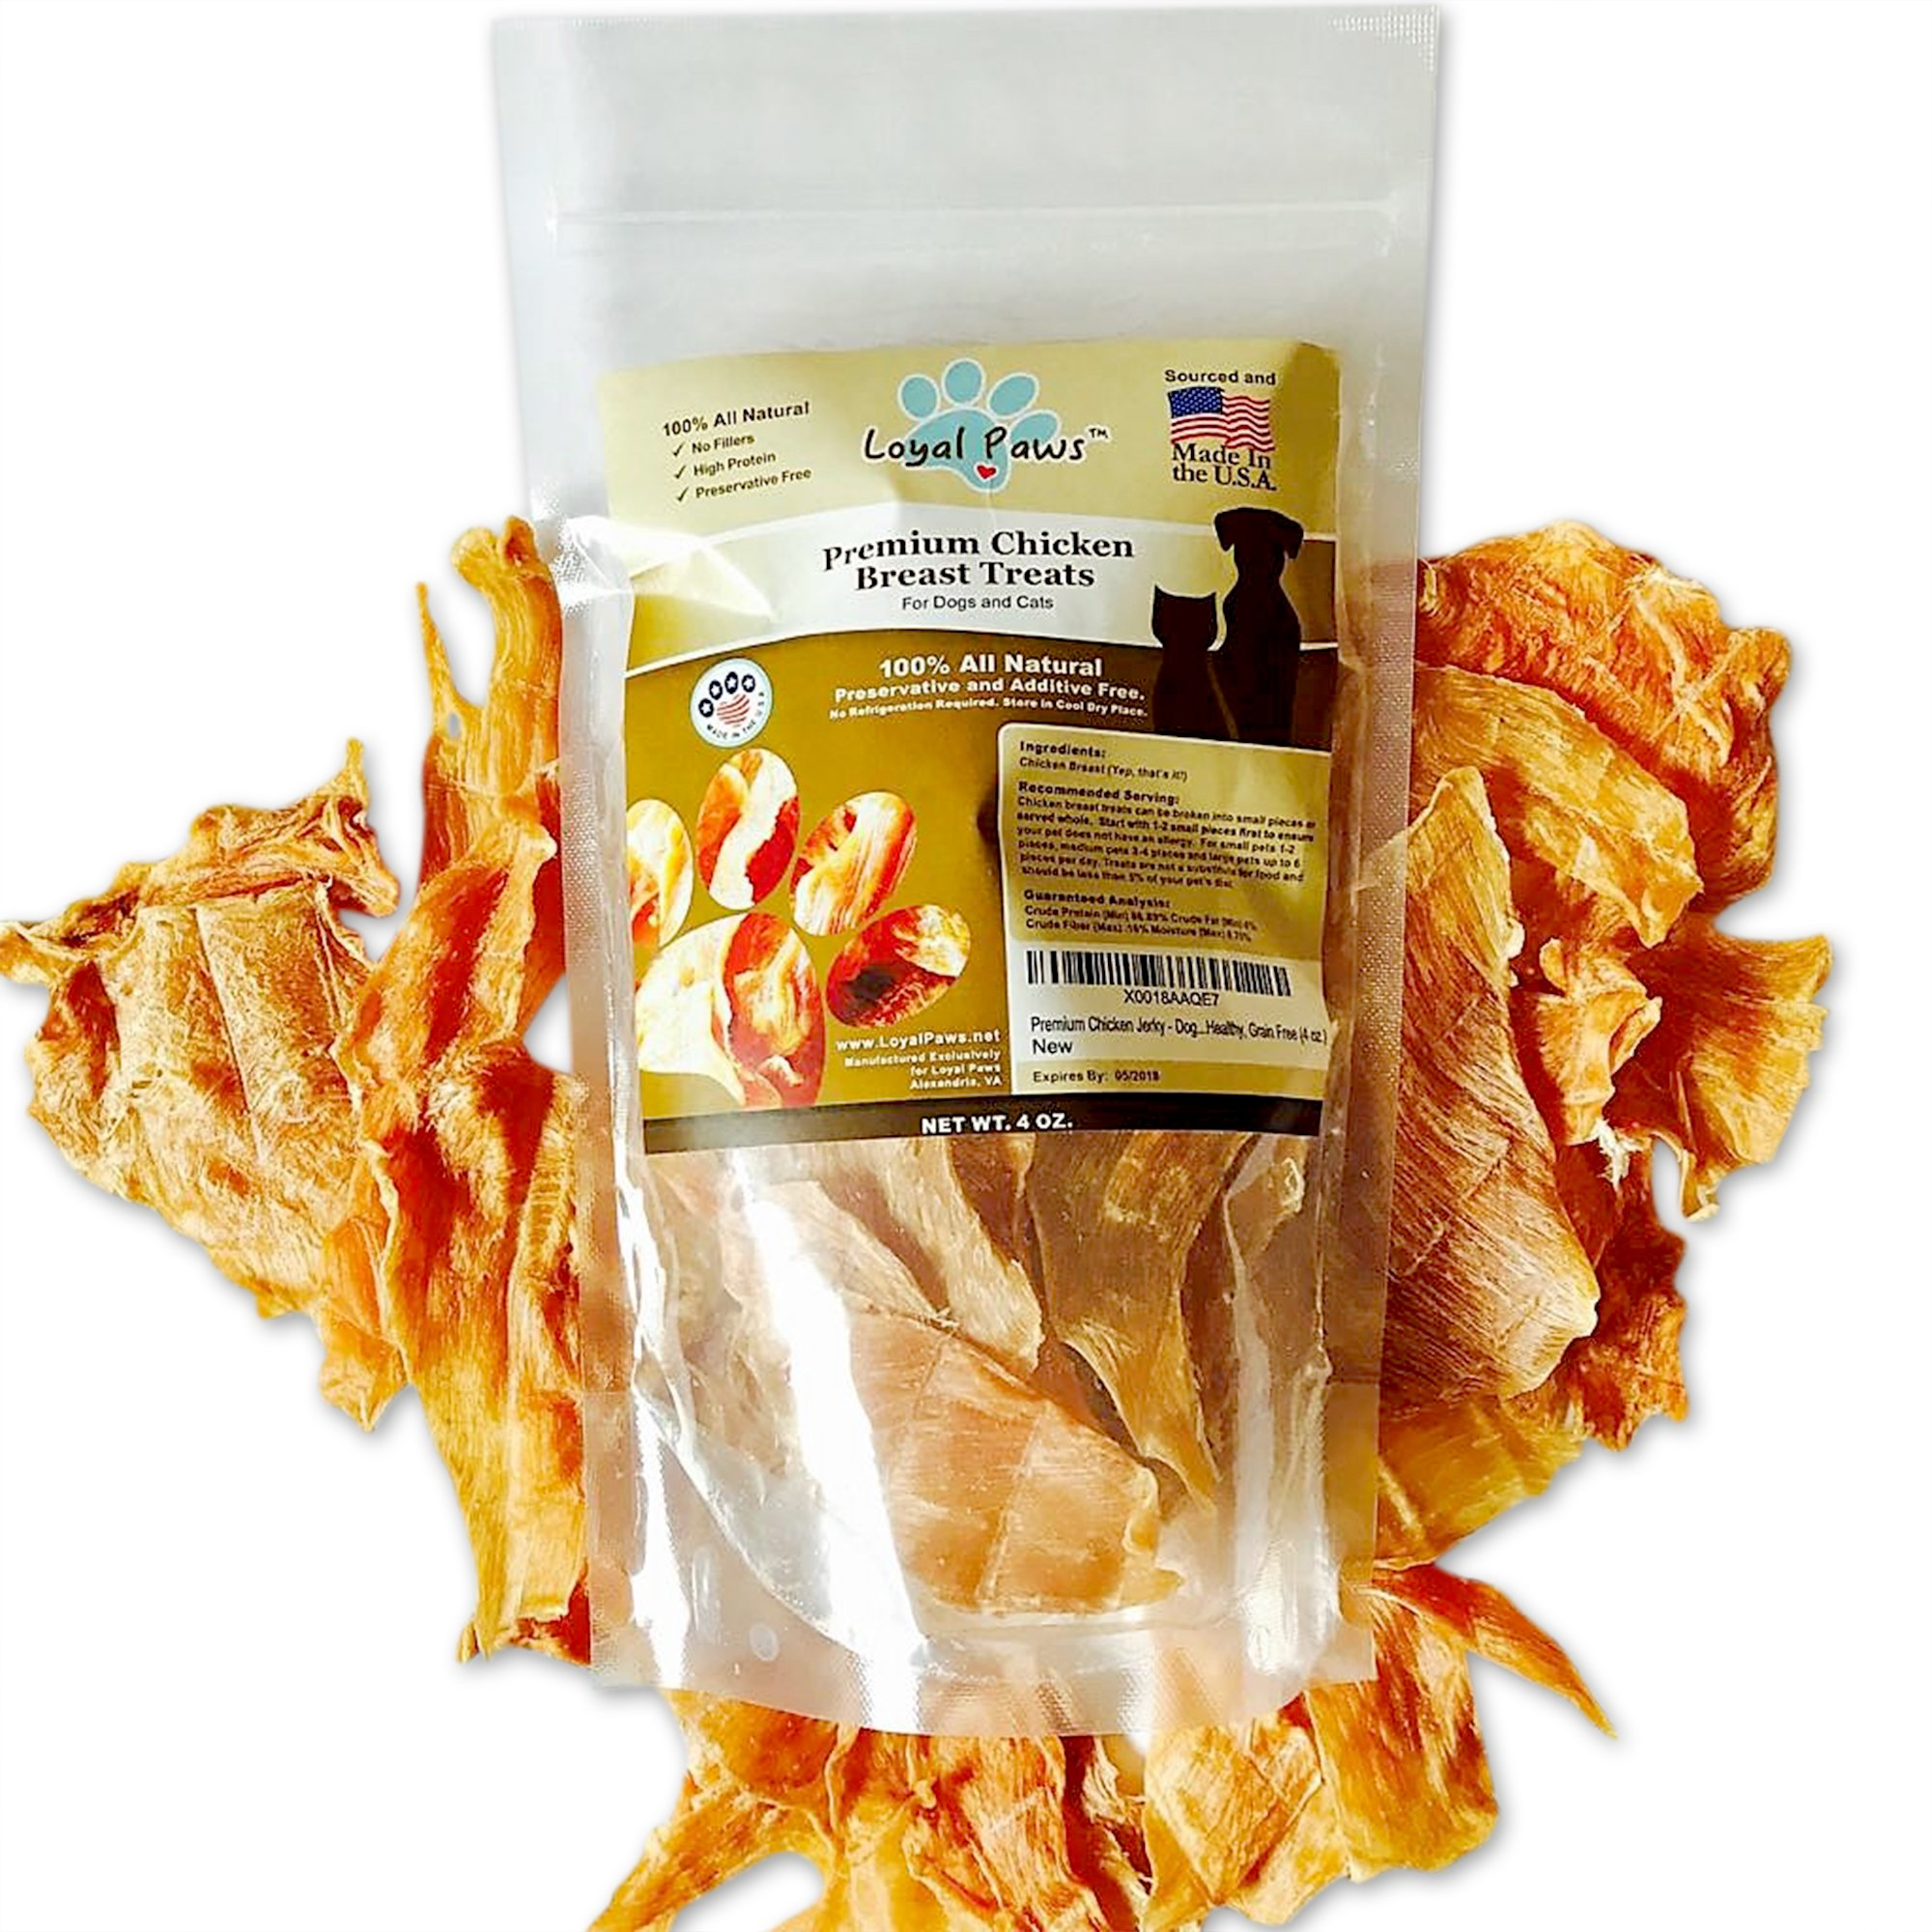 Loyal Paws Dog Jerky Treats - Premium Chicken - Dog Treats Made in USA Only. All Natural - Healthy, No Preservatives, Grain Free - Great For Training! 4 oz.